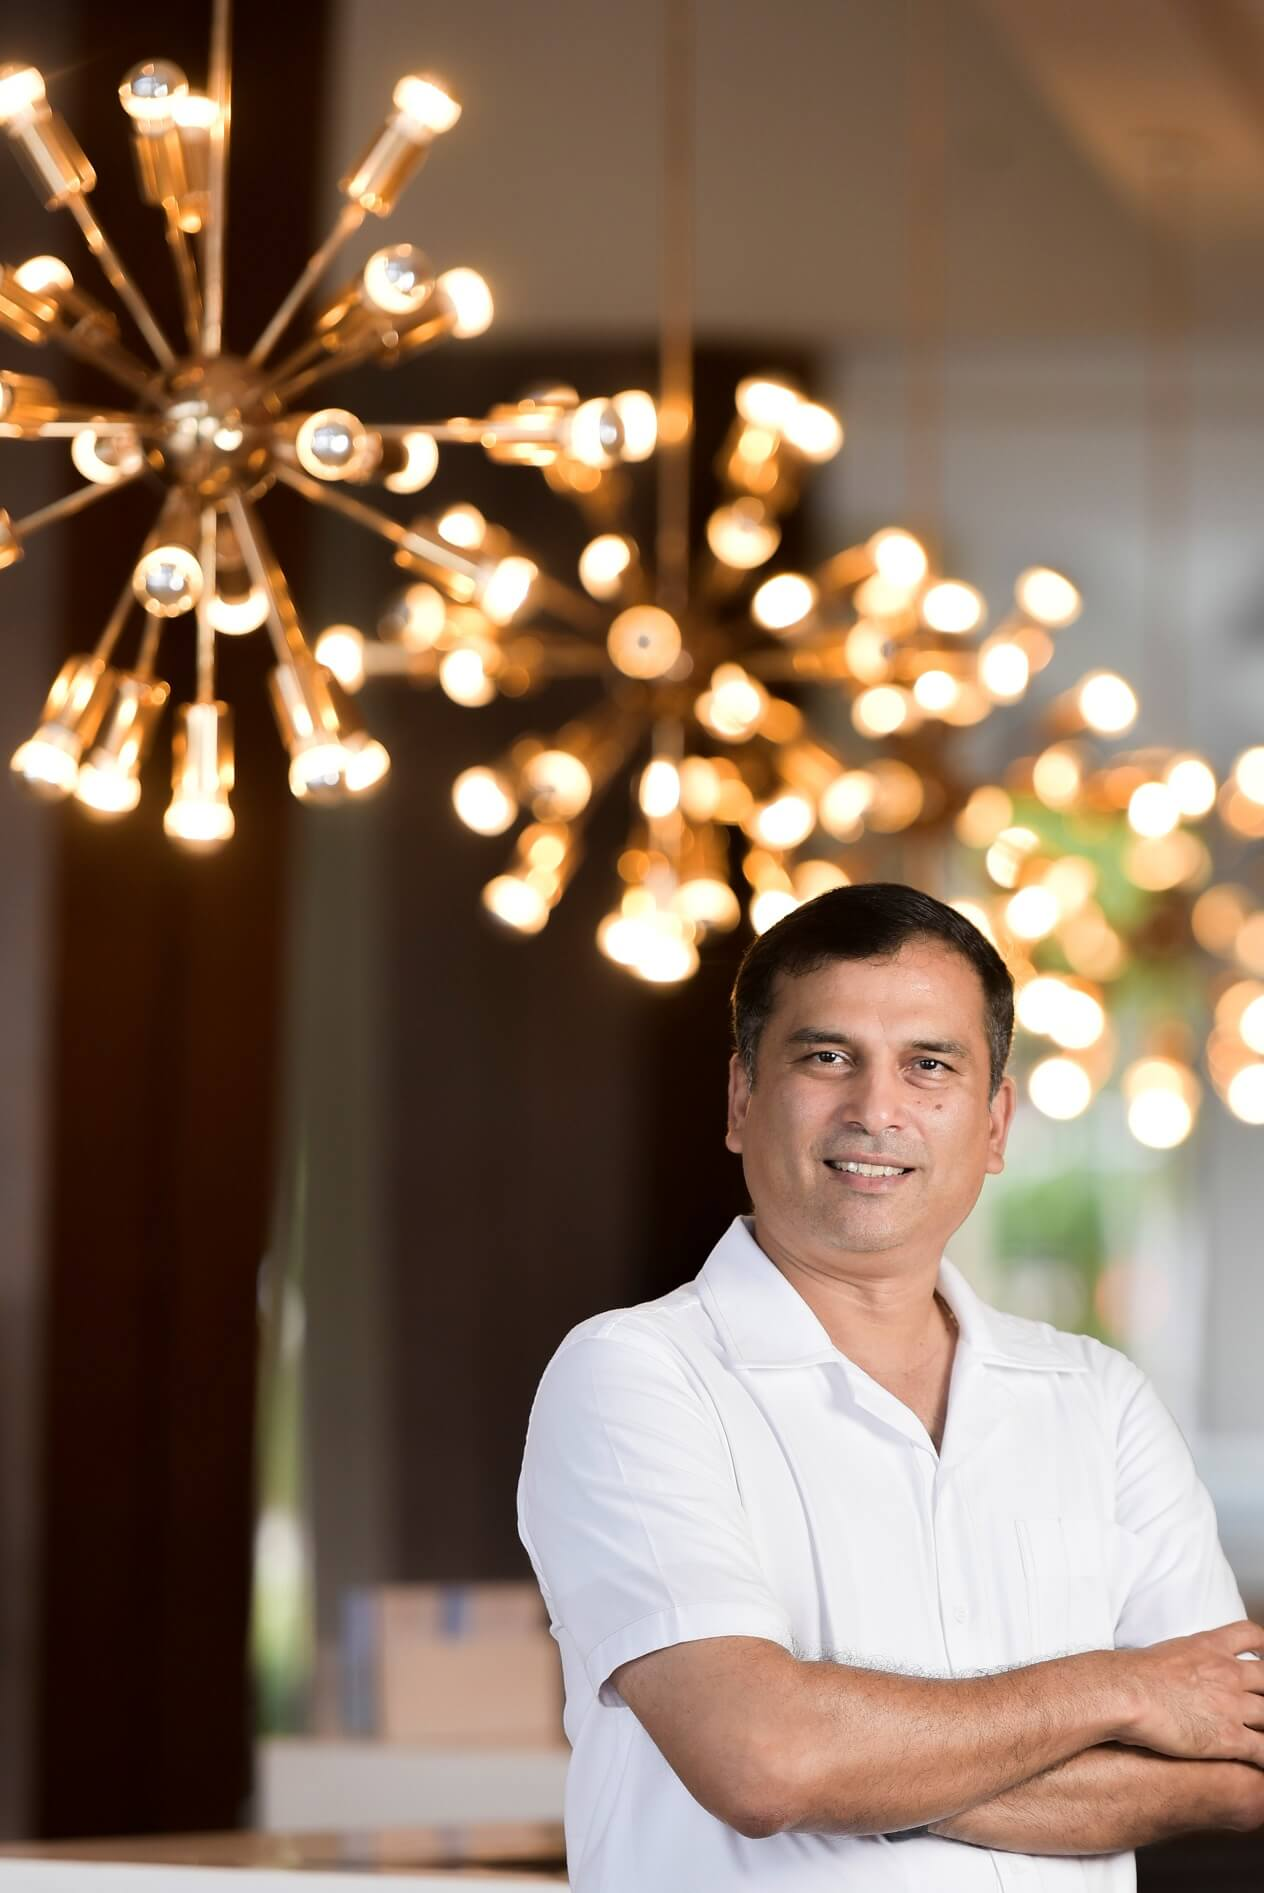 Vikram-Mujumdar-General-Manager-The-Westin-Desaru-Coast-Resort